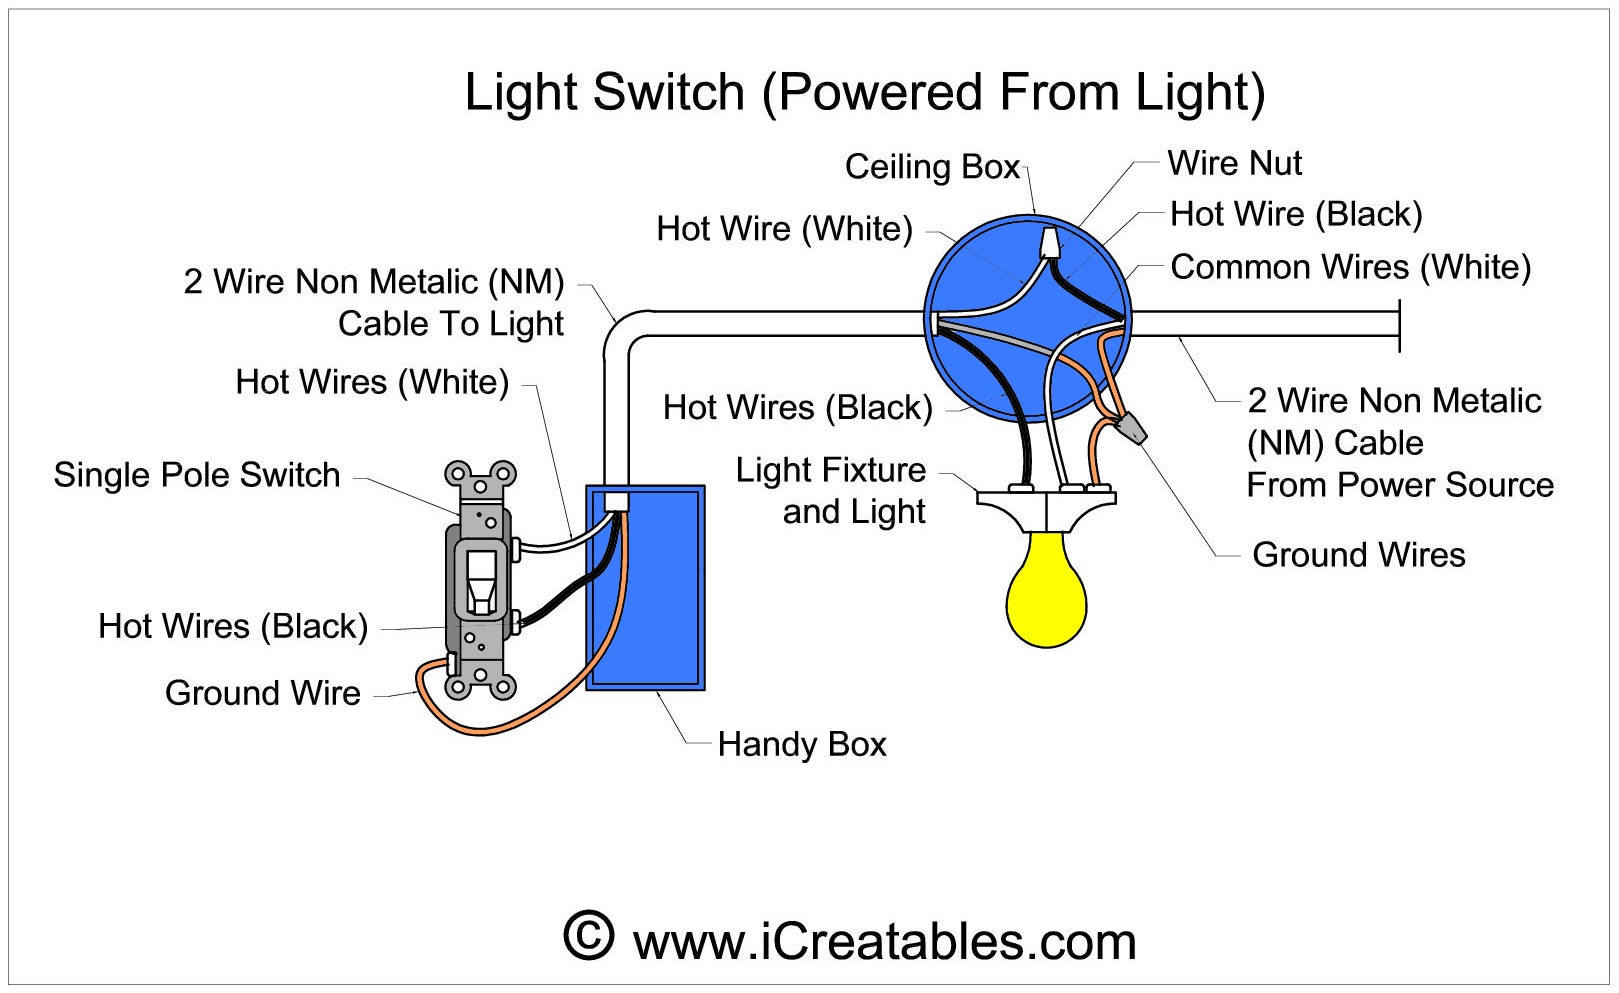 Light Switch Wiring with power coming from the light